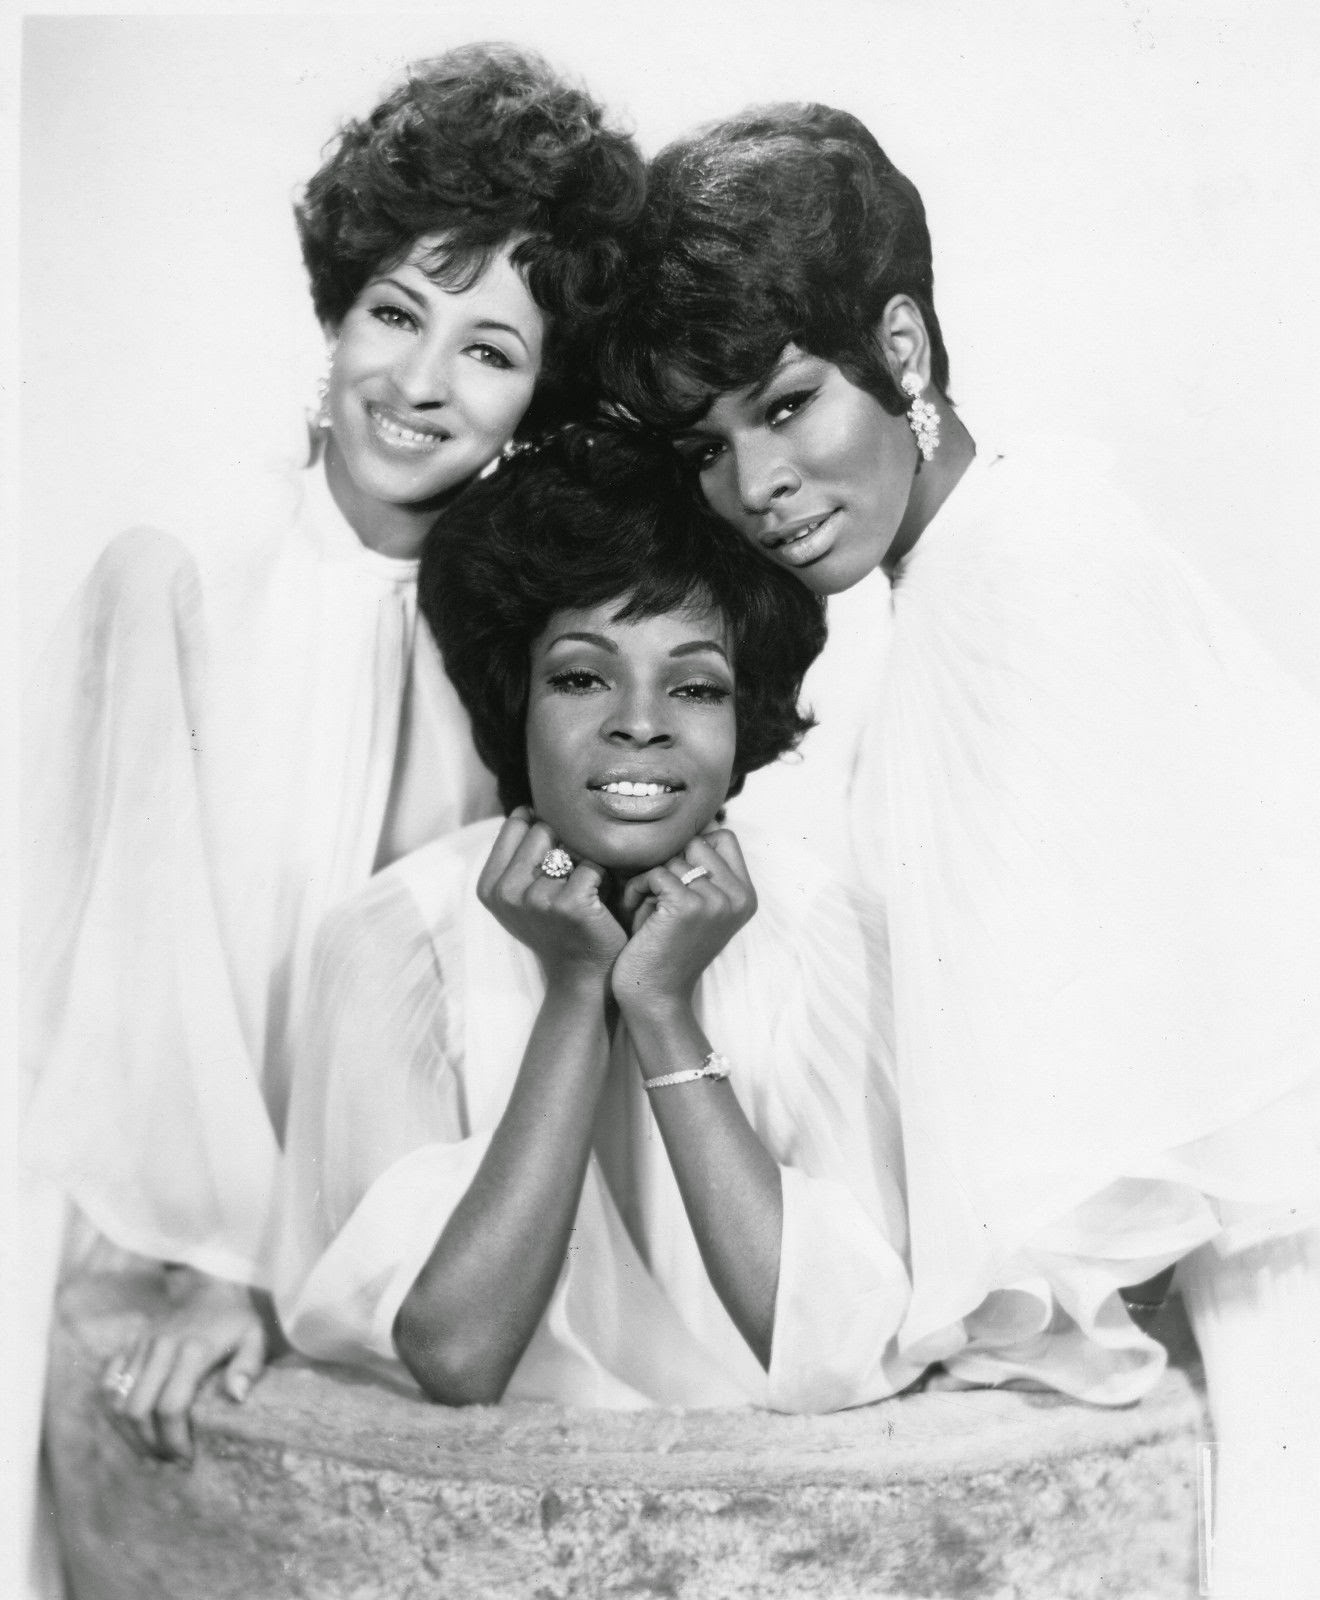 The martha and the vandellas are not